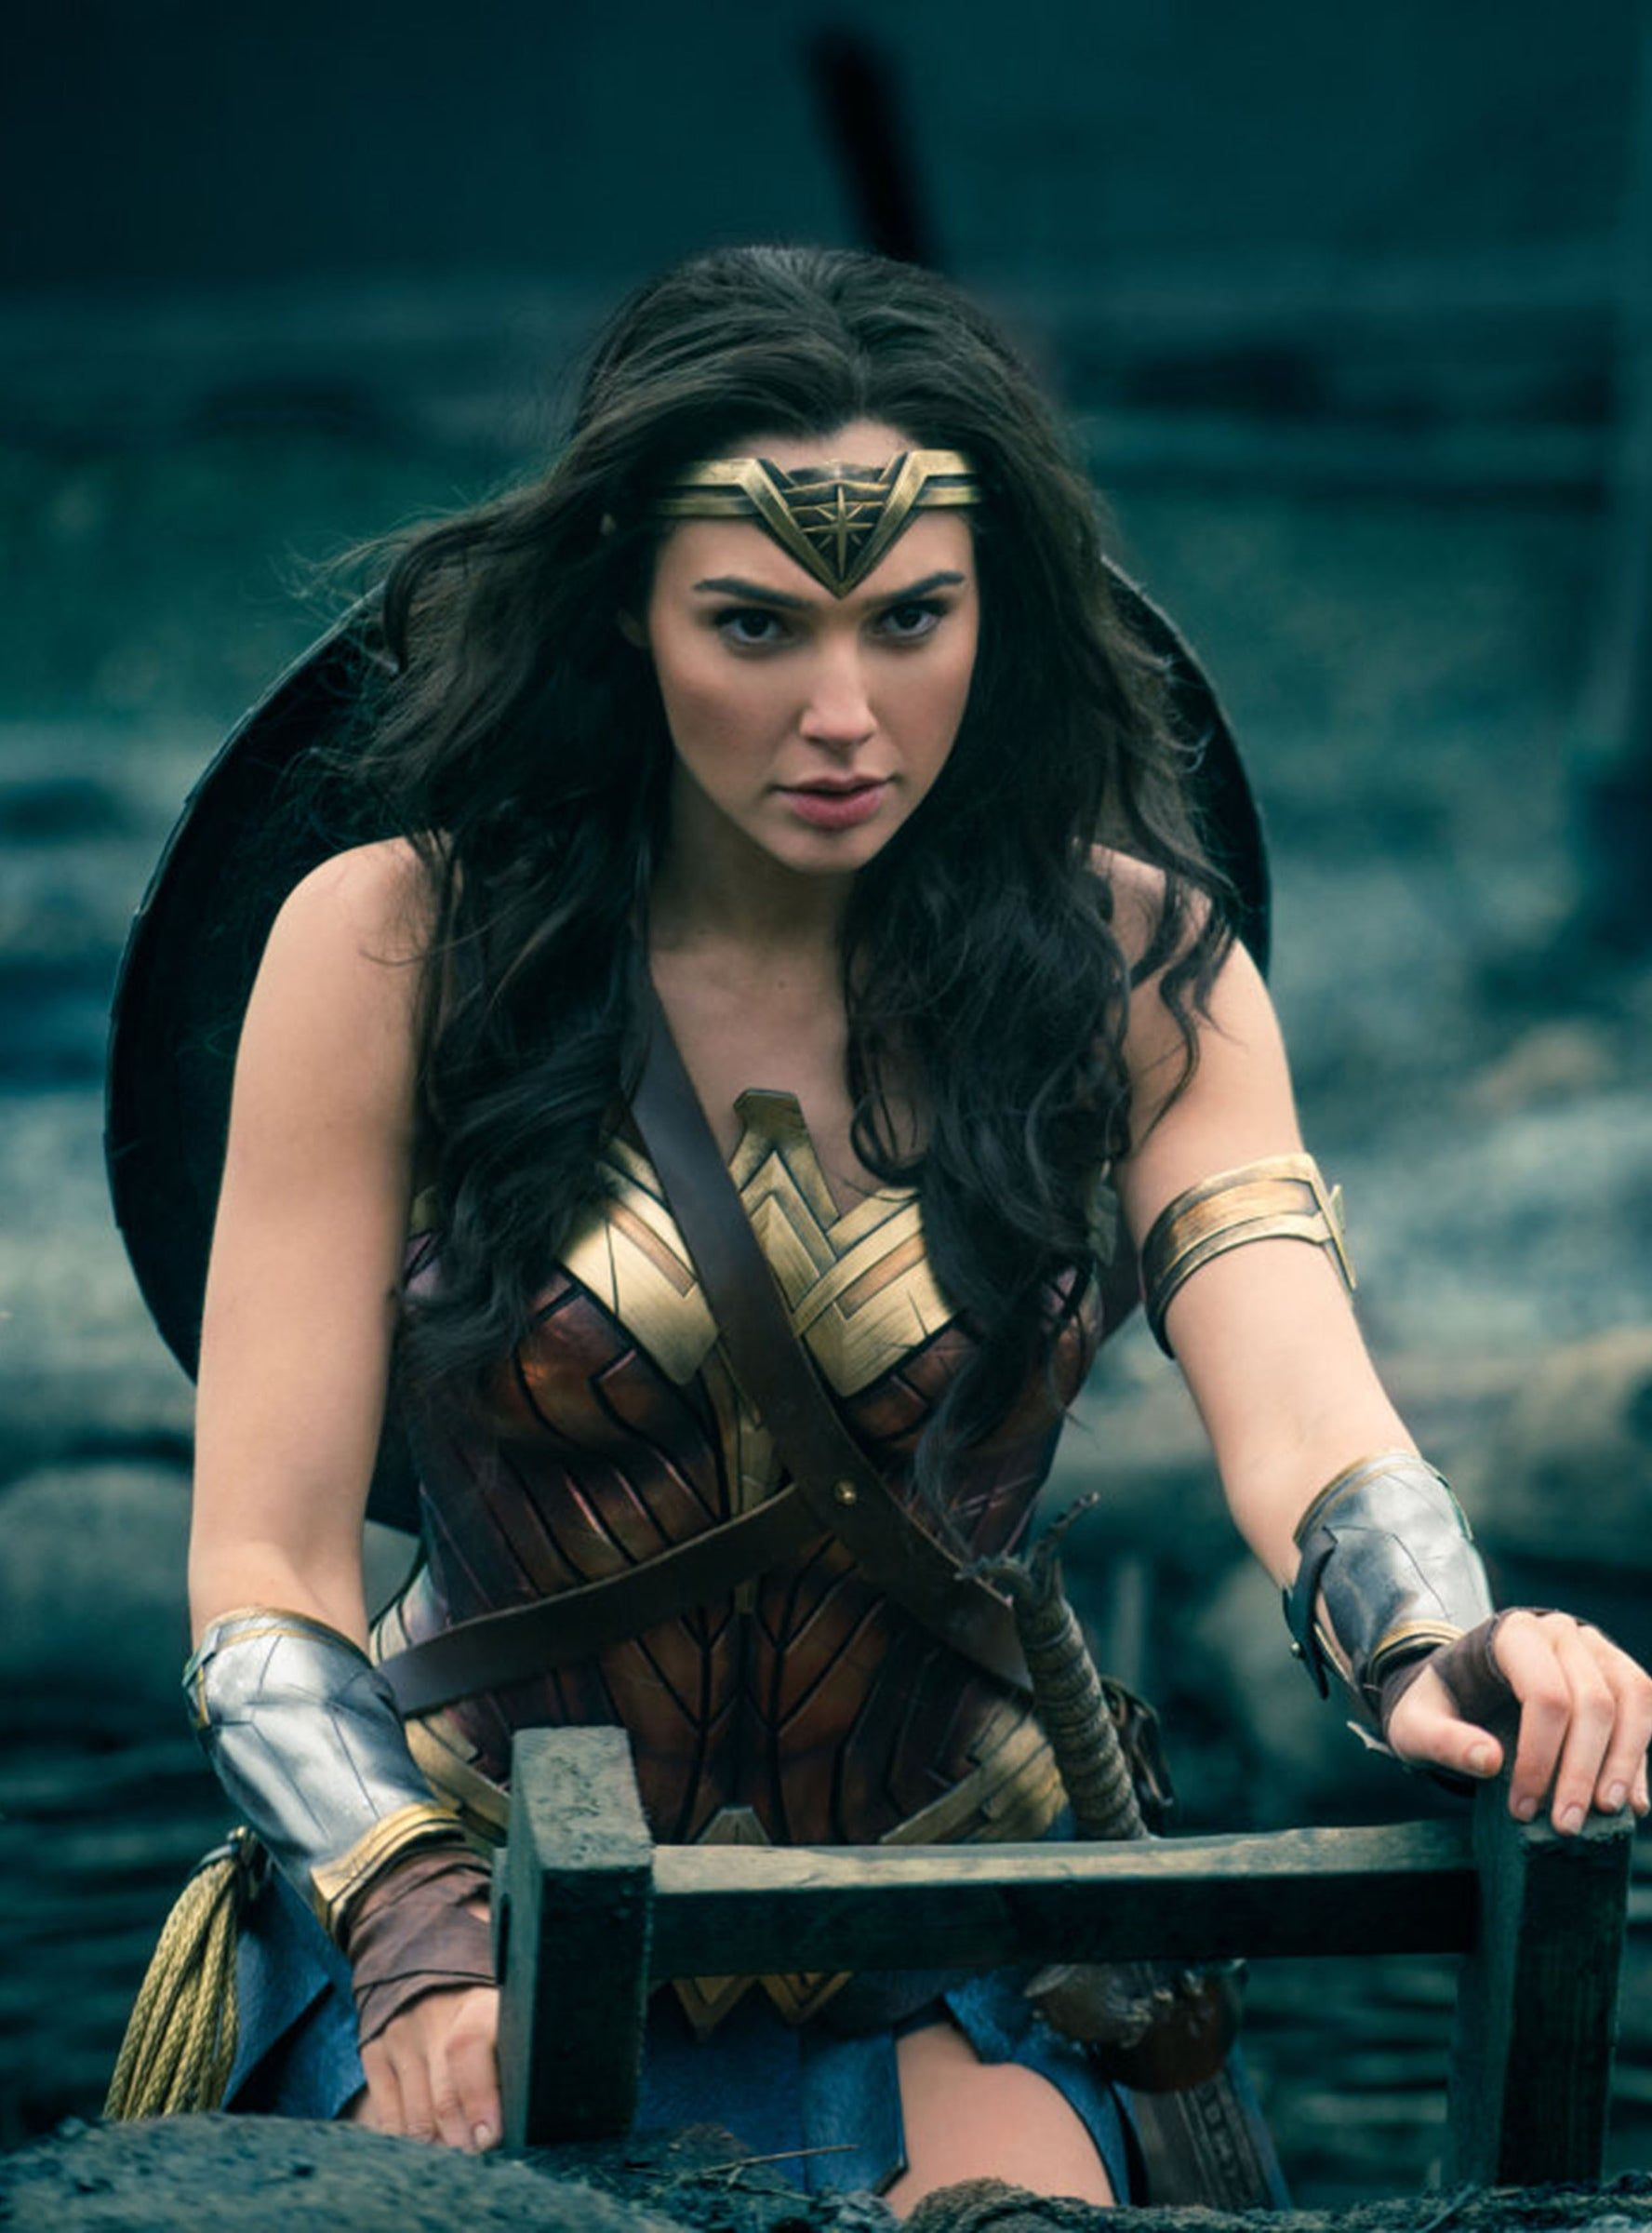 Sharing Hbo Max Is Tricky But Not Impossible In 2020 Wonder Woman Movie Gal Gadot Wonder Woman Wonder Woman